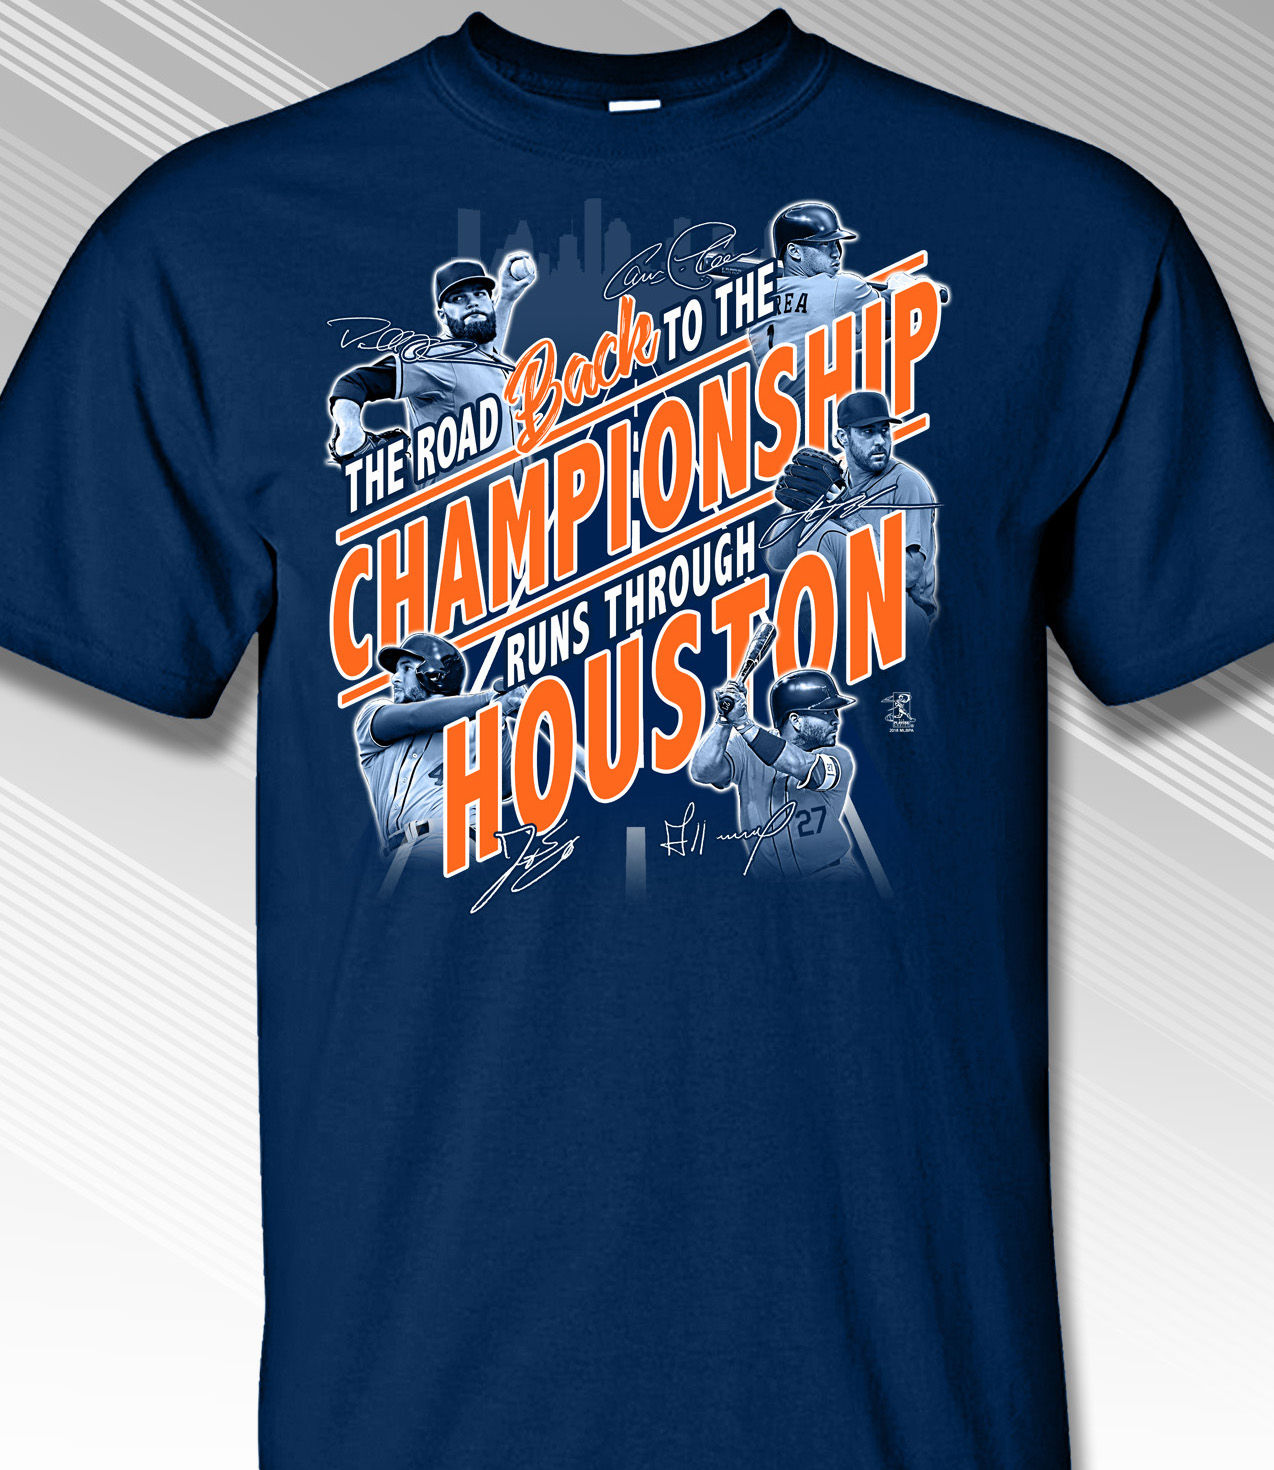 The Road Back to the Championship Runs Through Houston T-Shirt<br>Short or Long Sleeve<br>Youth Med to Adult 4X